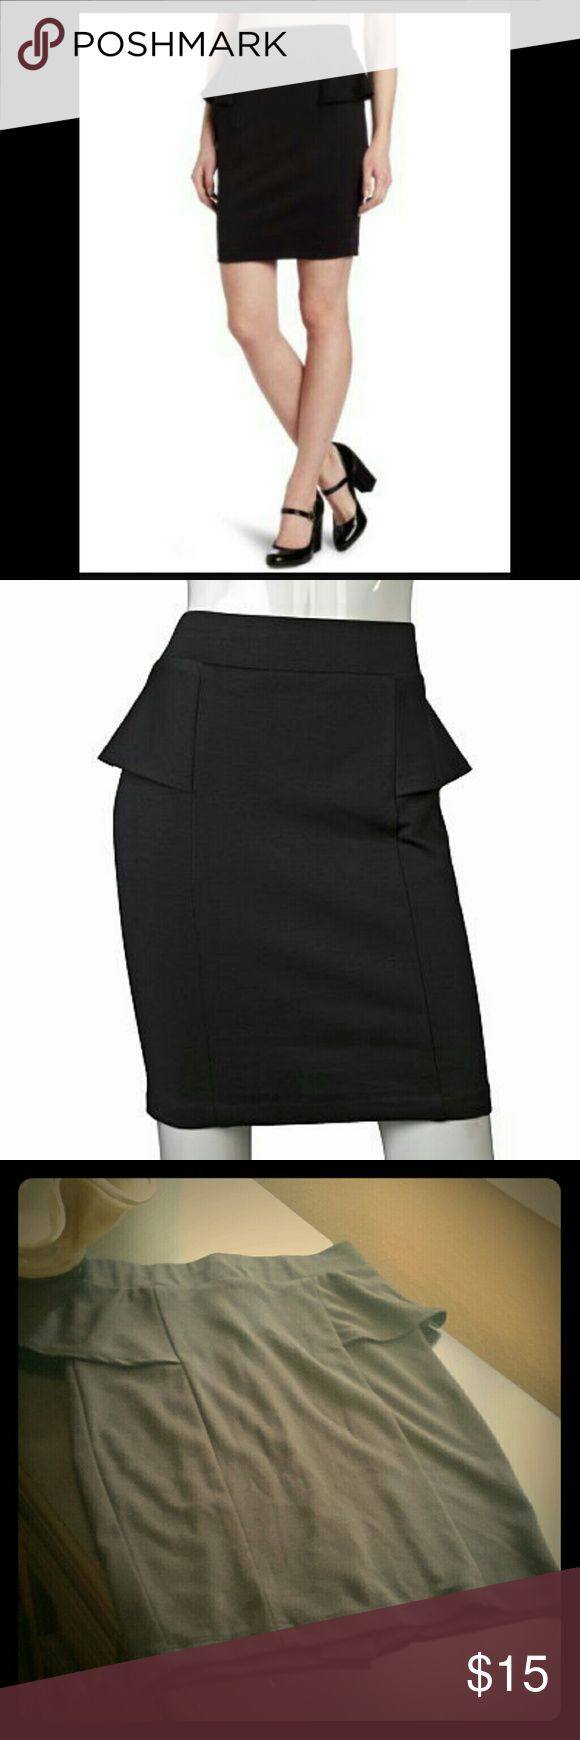 A. Byer Black Peplum Skirt A. Byer black peplum skirt. Stretchy to hug all the curves. Sexy little slit in the back. Size small. Skirts Pencil